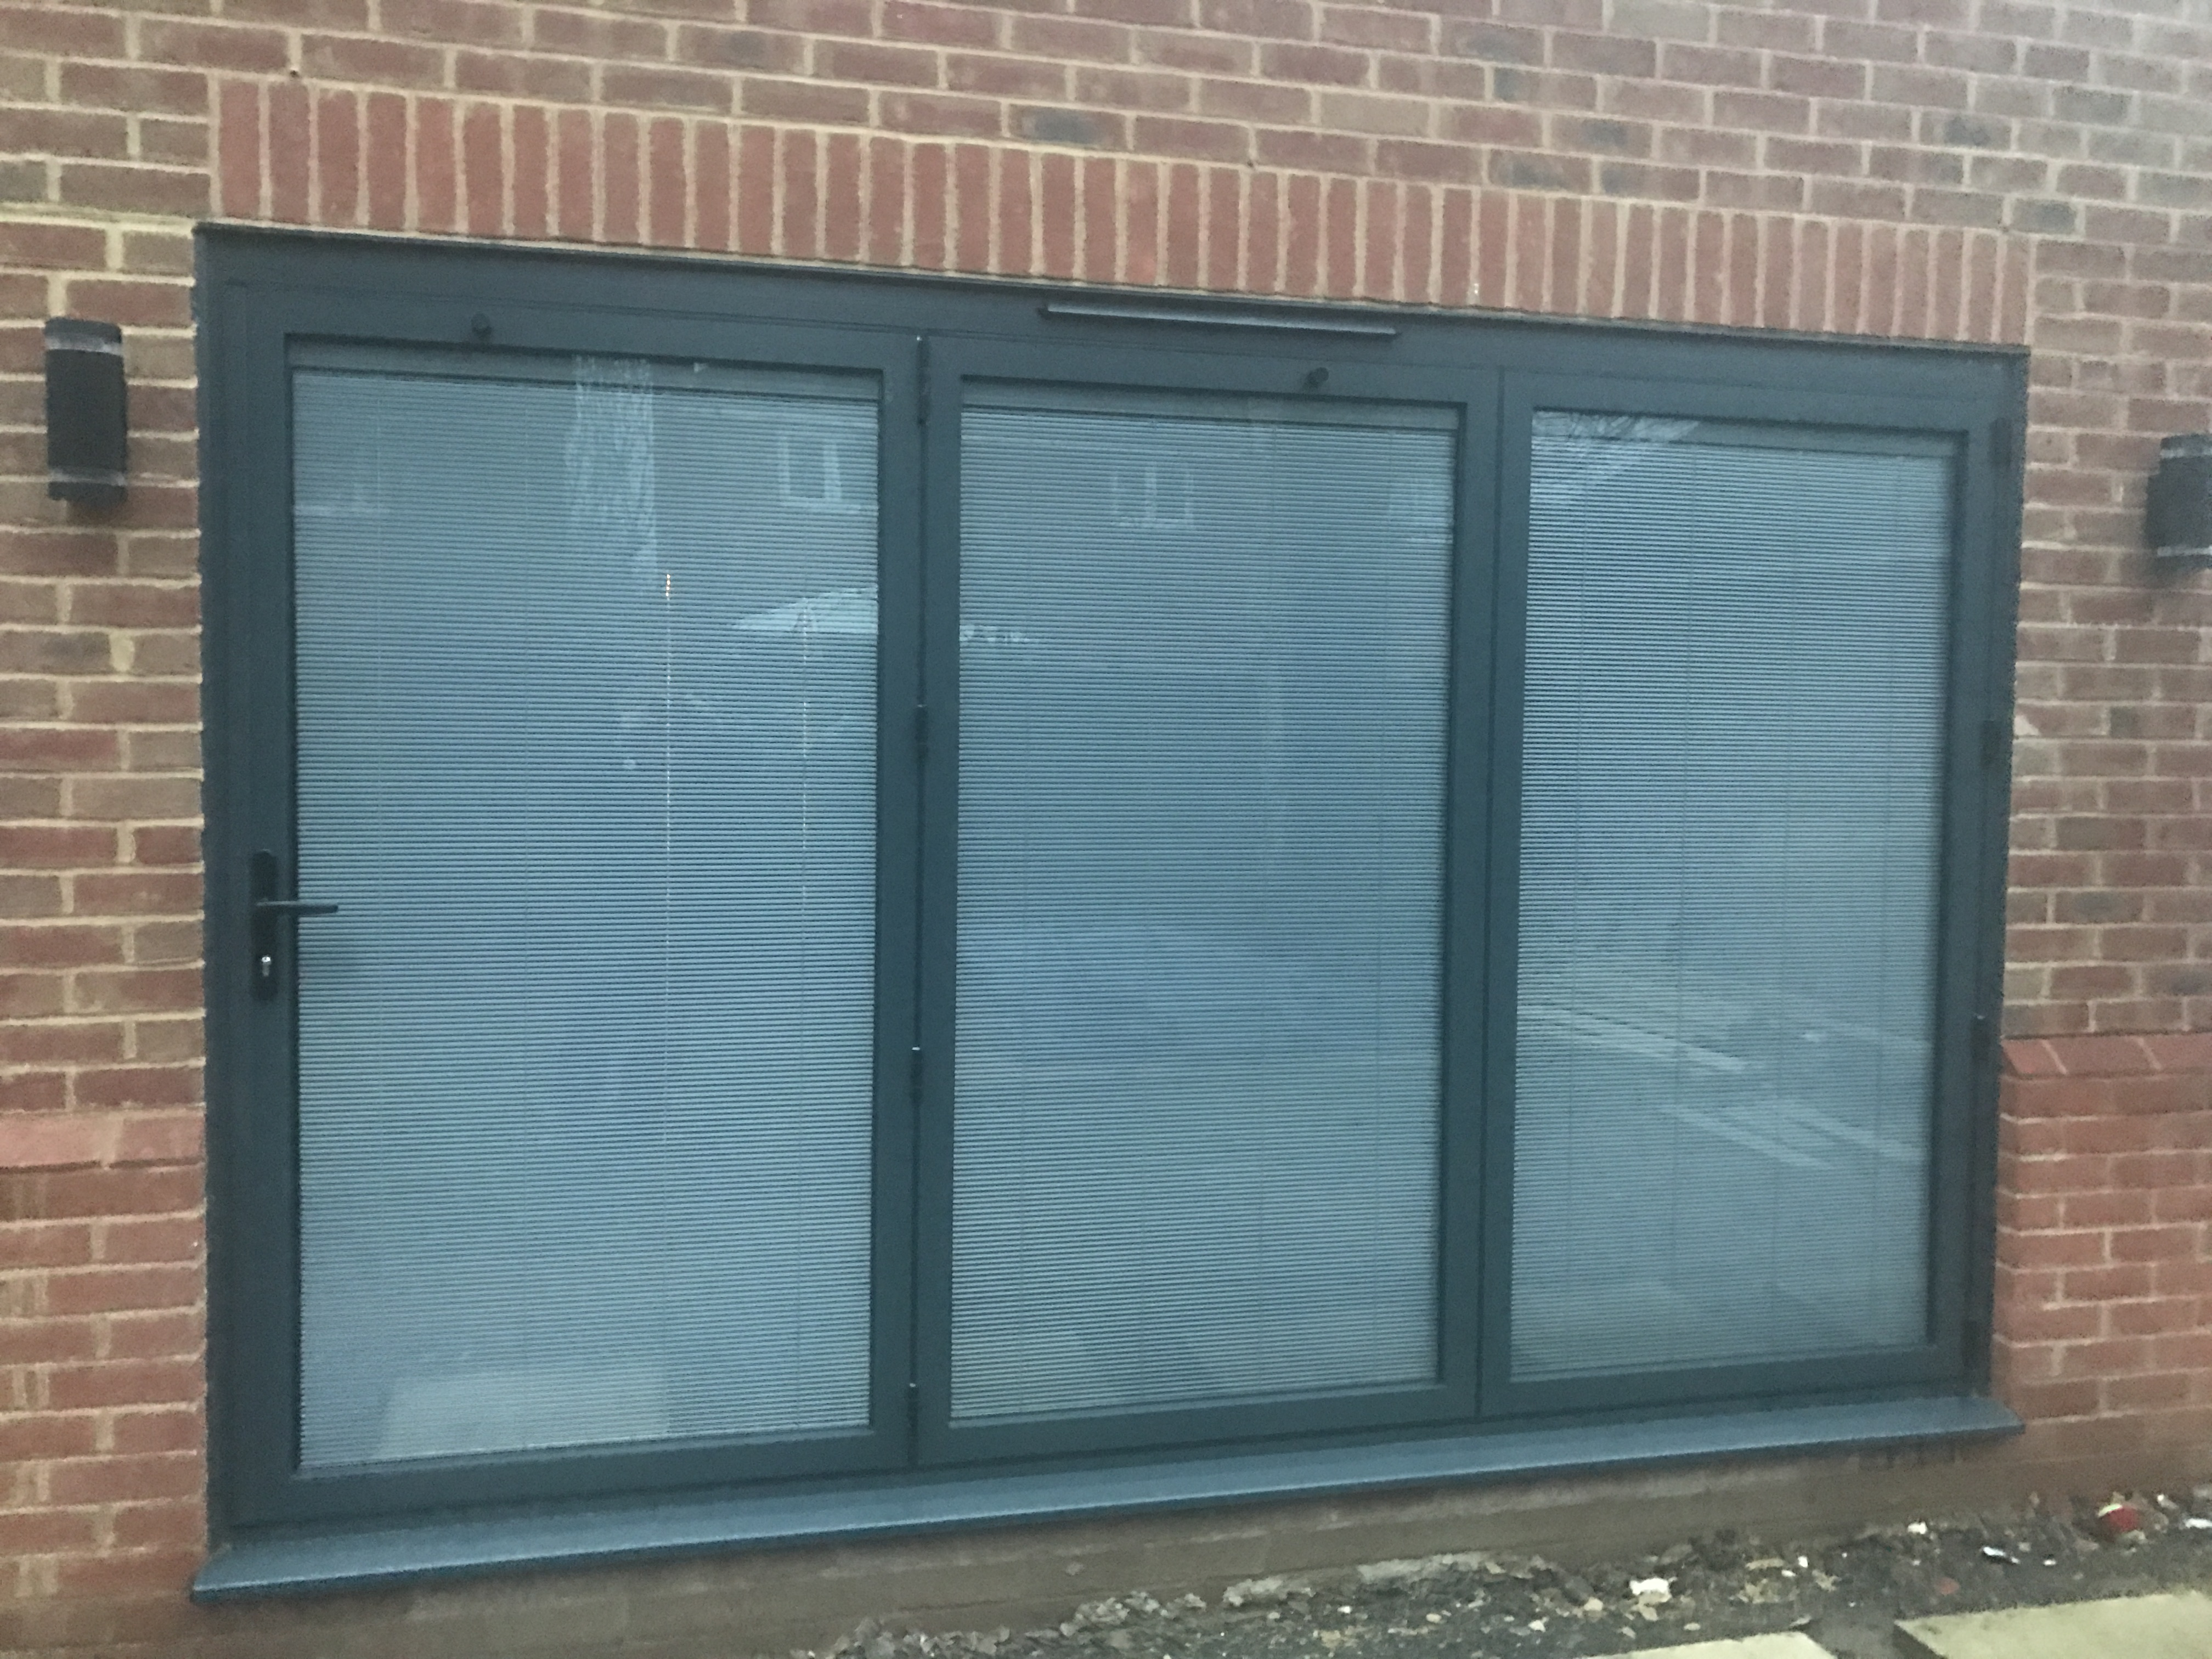 Aluminium Bifolding Doors with integral blinds in glass units.  Opening created, soldier bricks abov